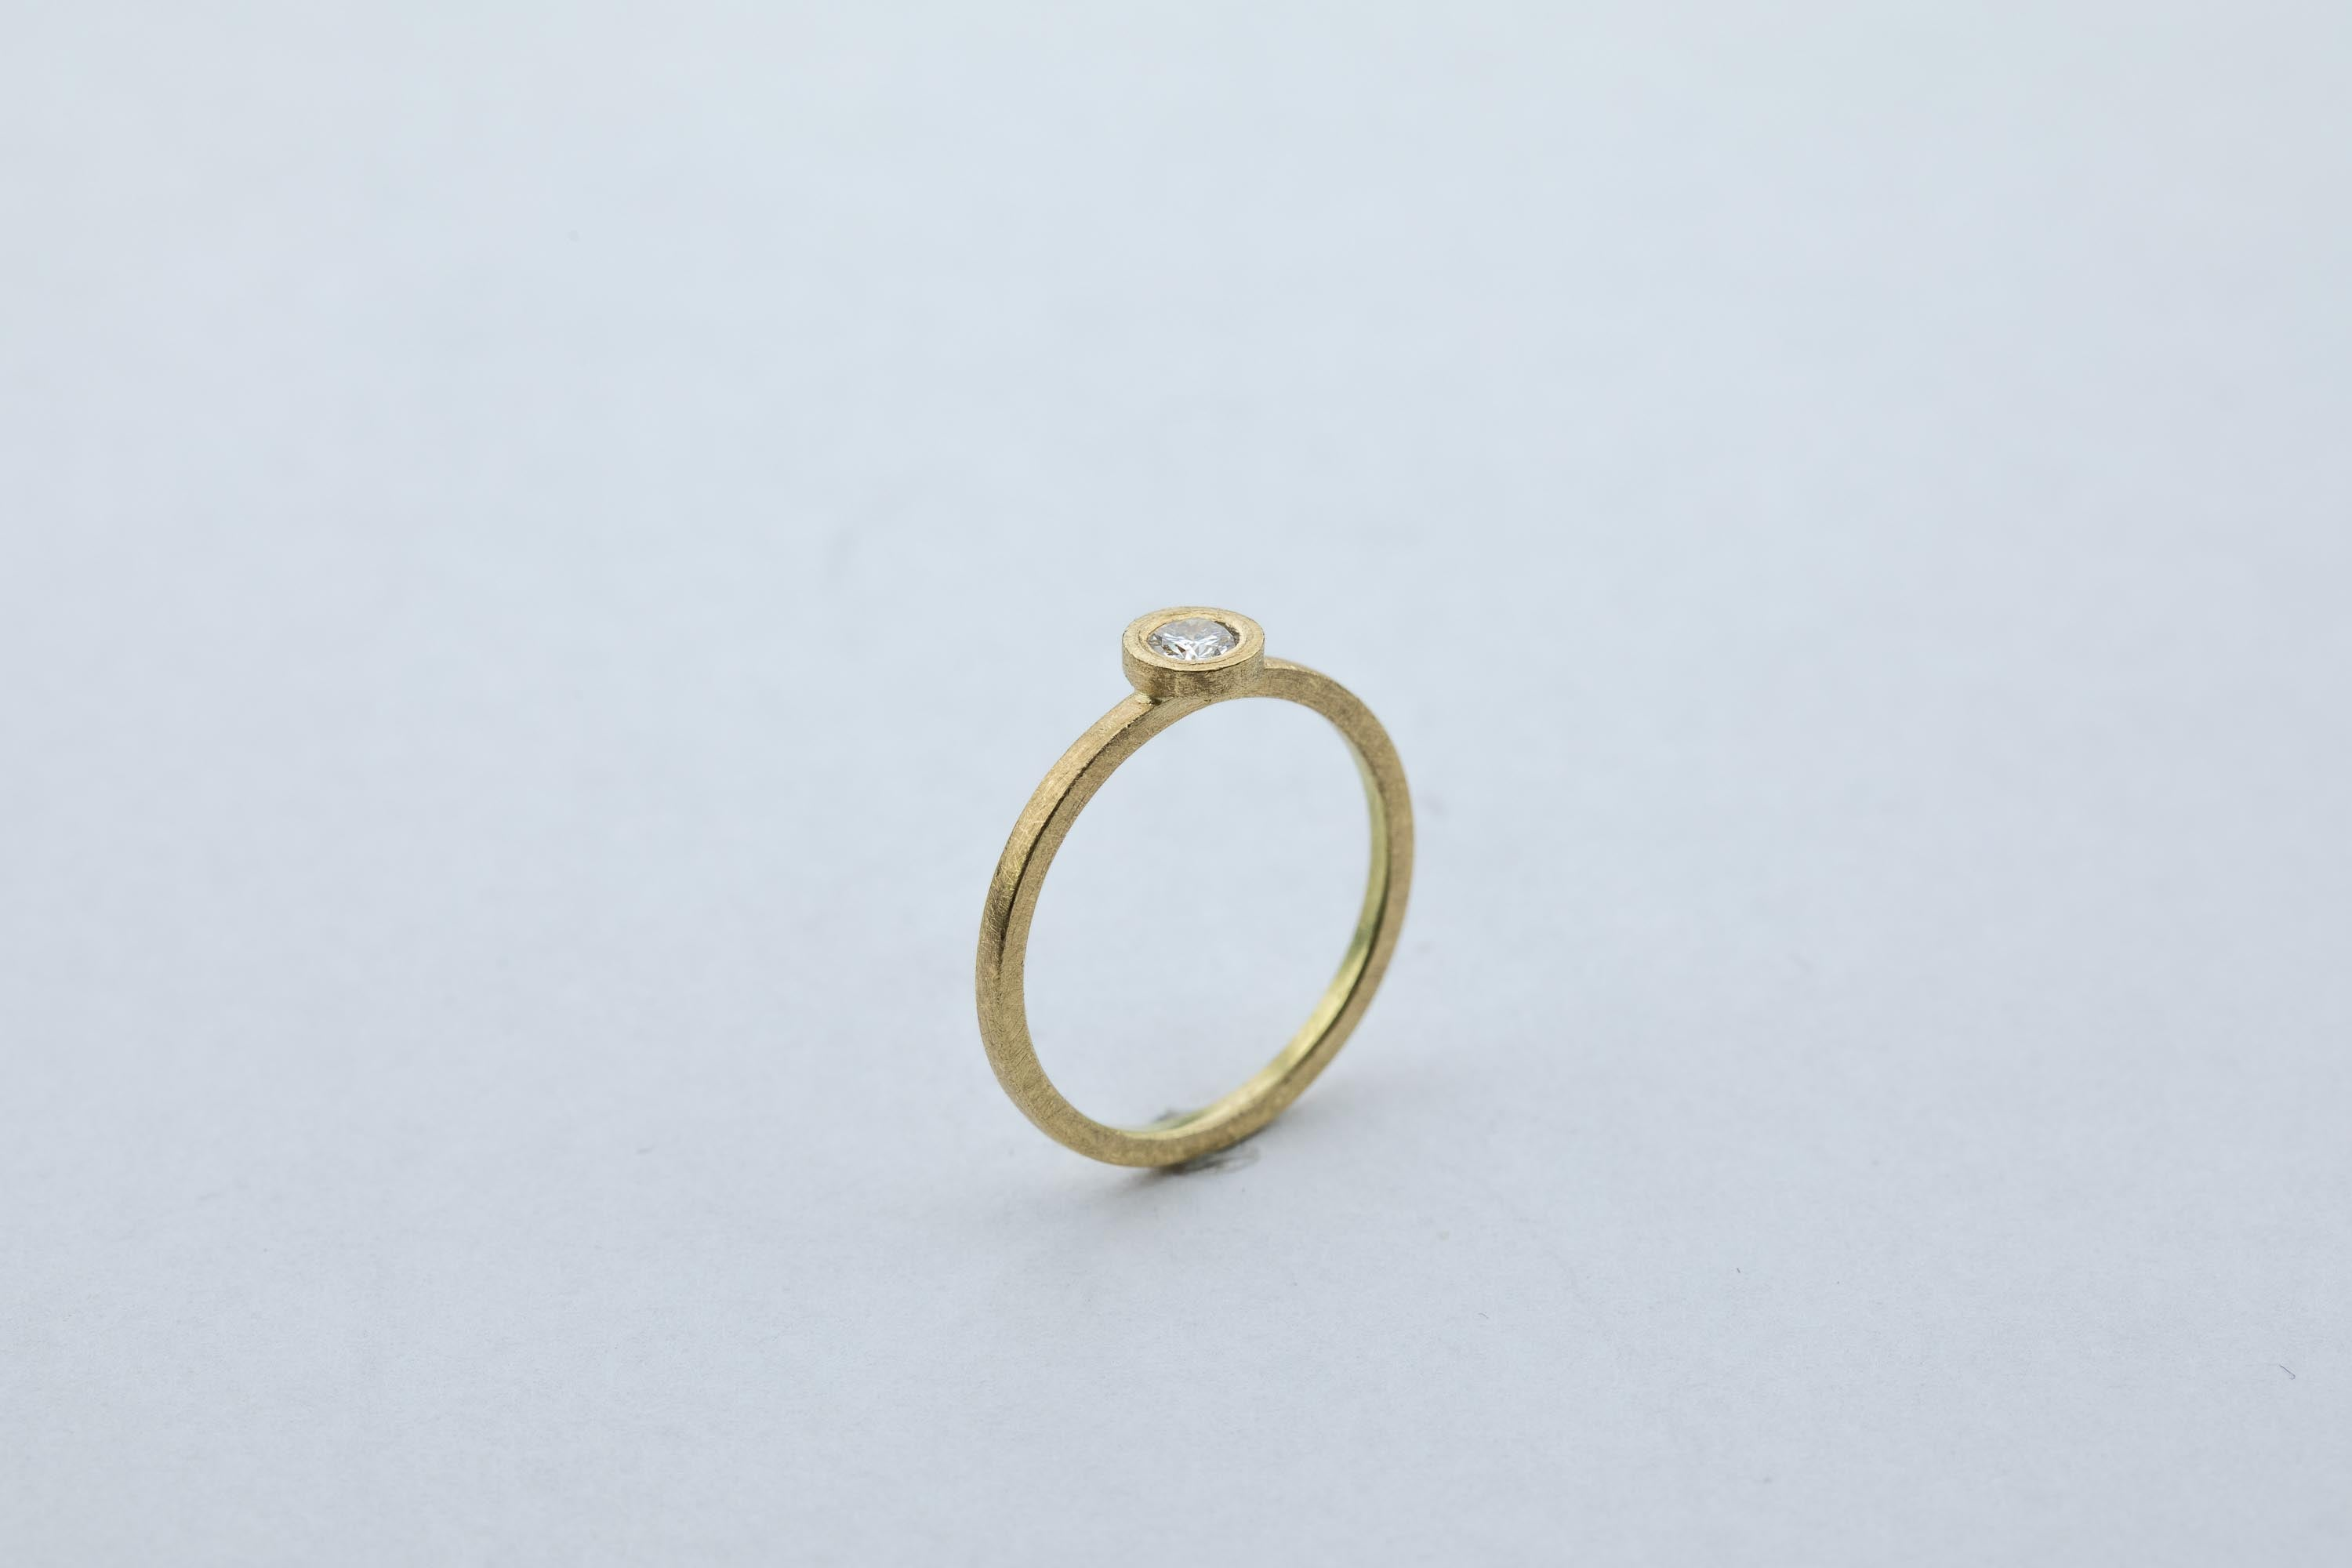 Ring, Brillant, 750/000 Gold